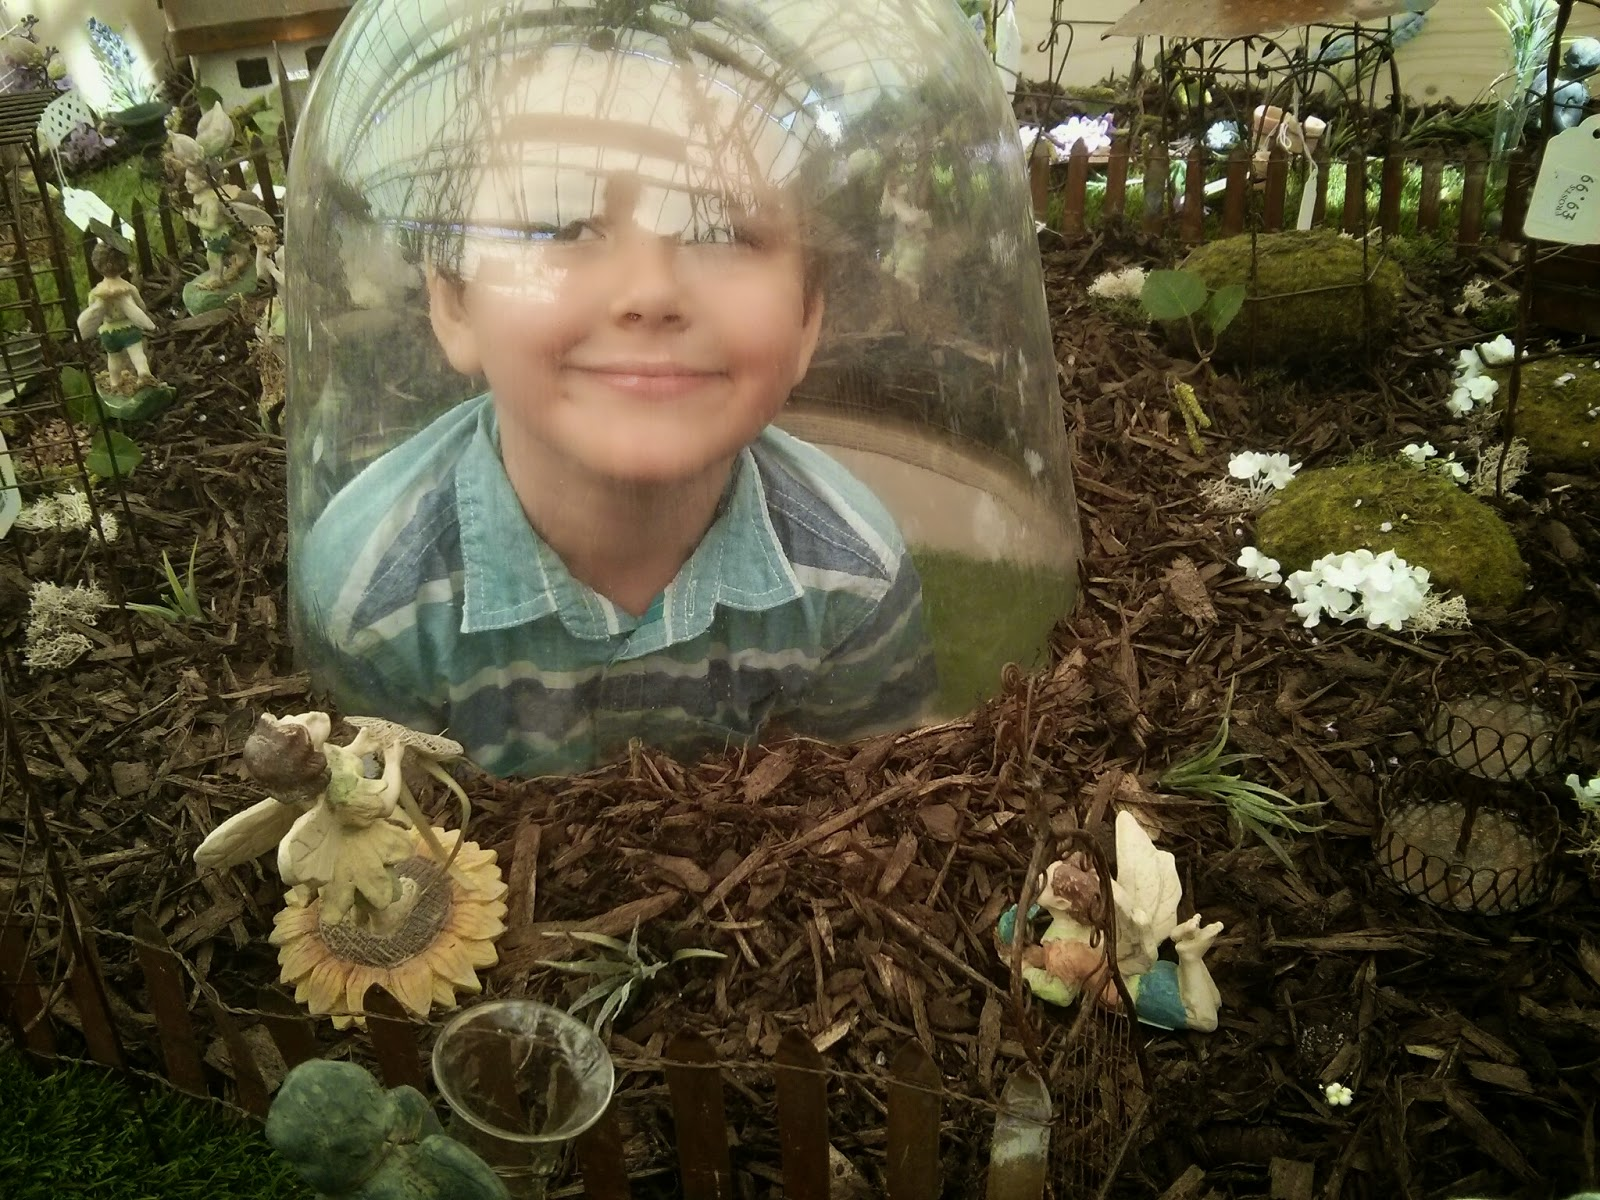 Big Boy viewing the Fairy Garden